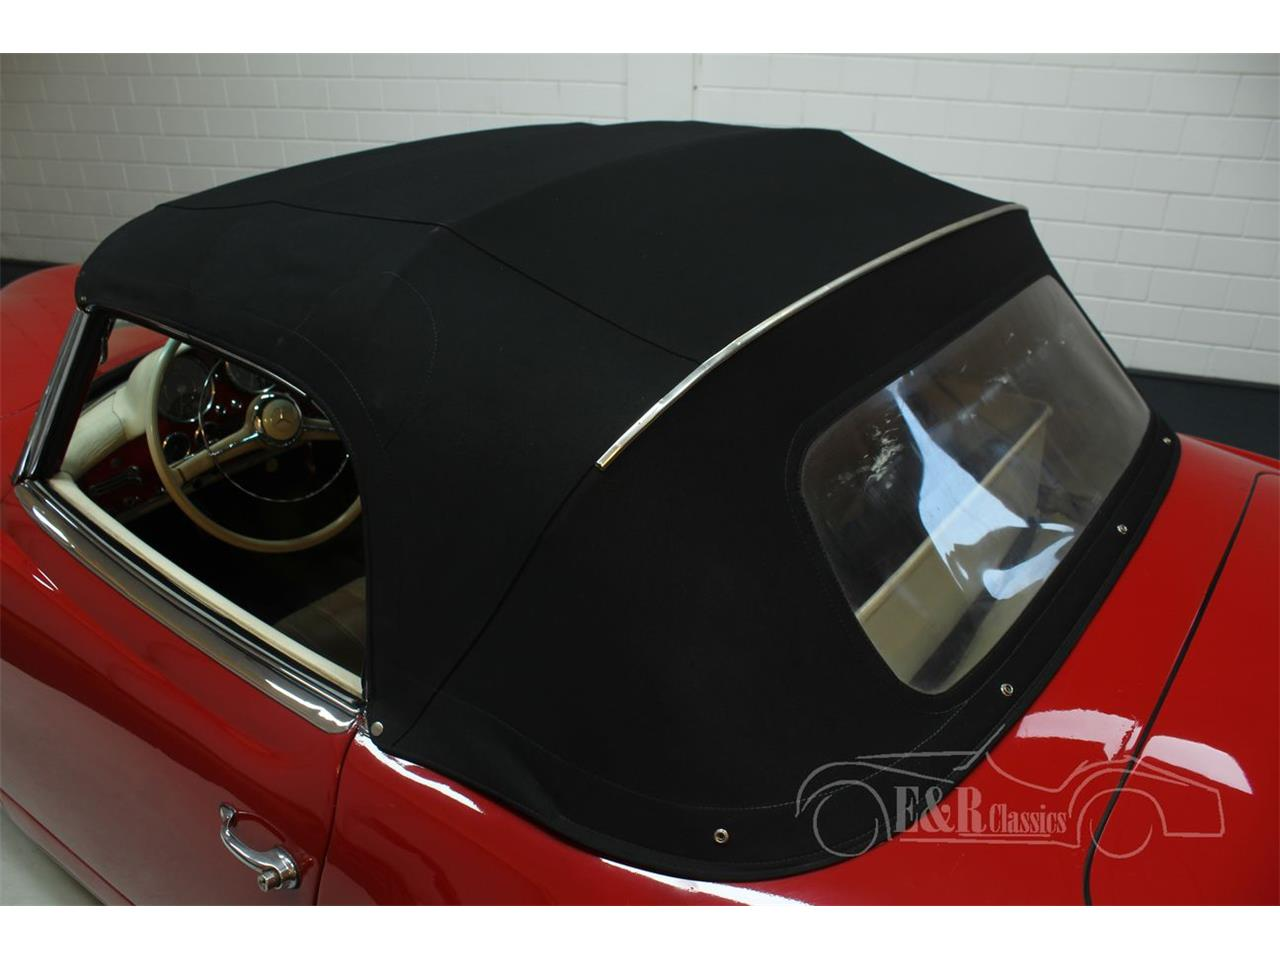 Large Picture of Classic '56 Mercedes-Benz 190SL located in - Keine Angabe - - $118,450.00 - PH44